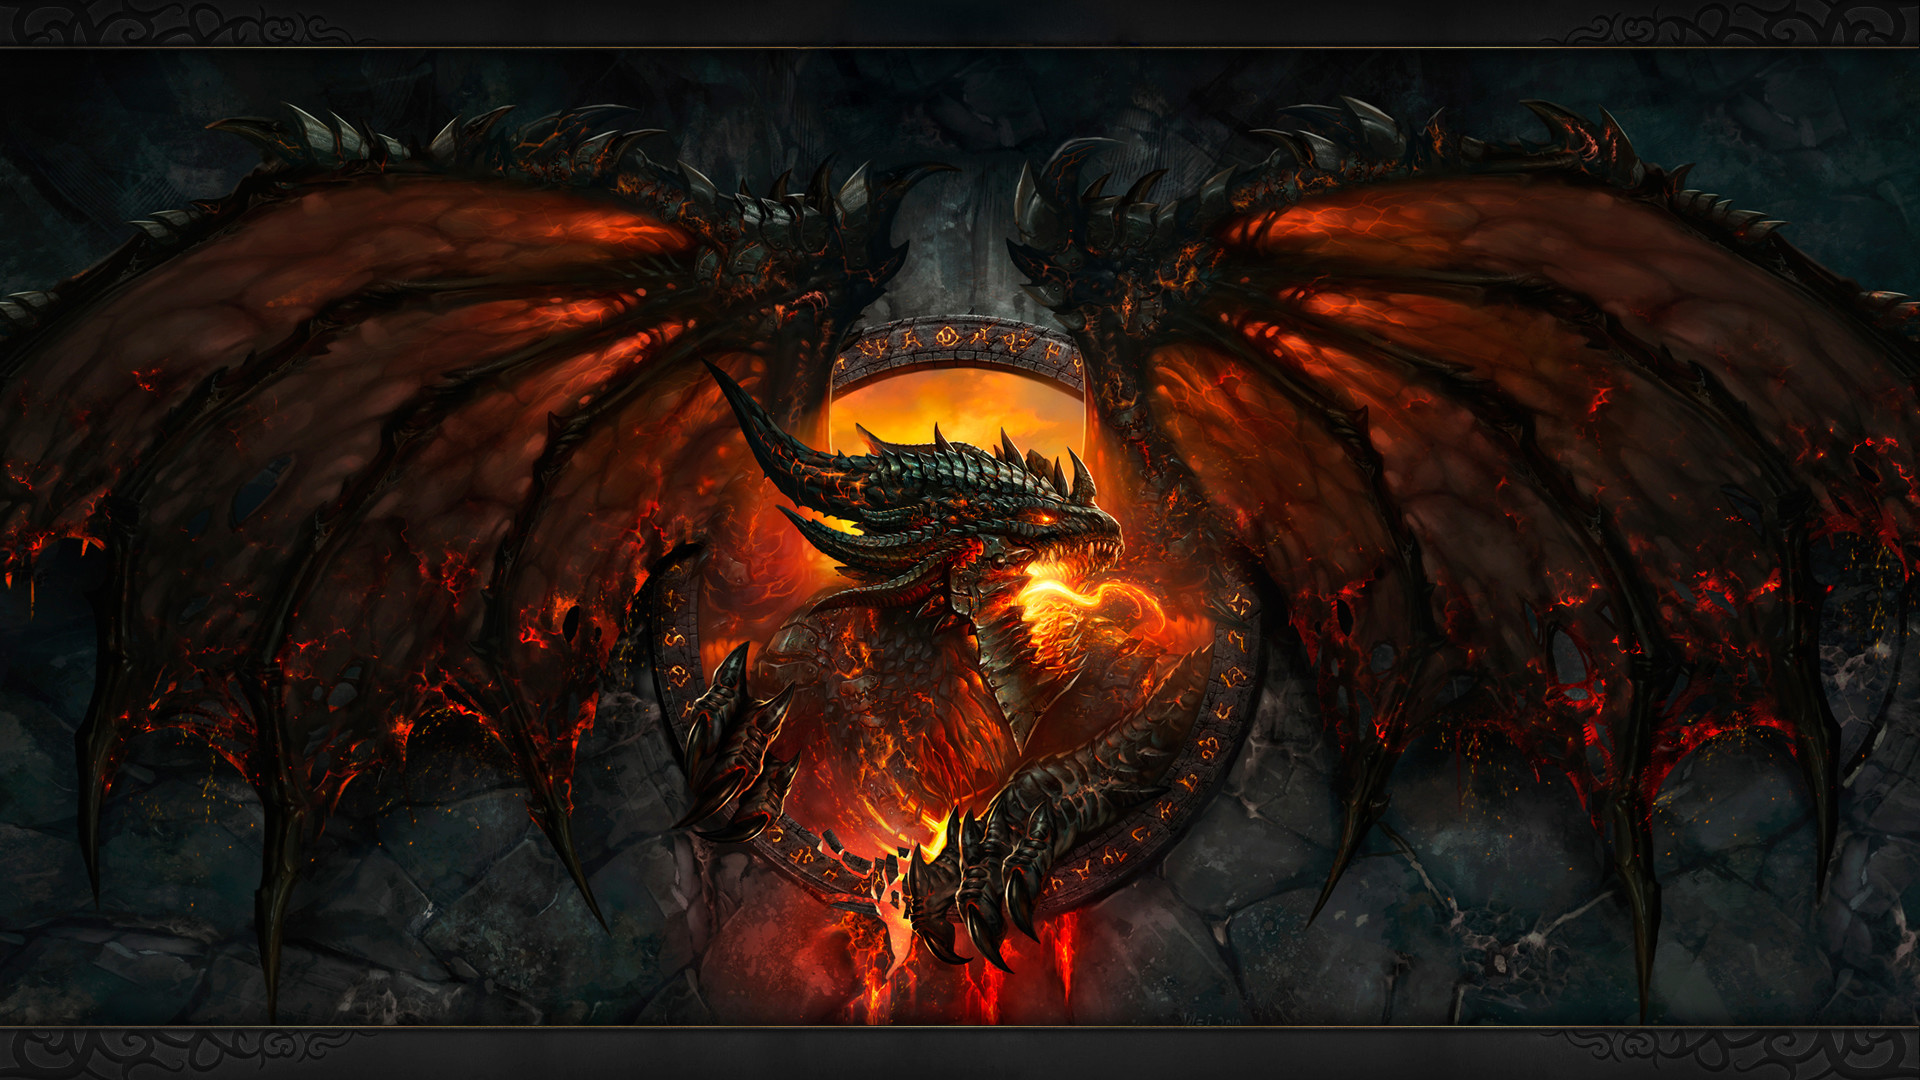 1920x1080 Blizzard Entertainment World of Warcraft World of Warcraft: Cataclysm  deathwing dragons wallpaper ( / Wallbase.